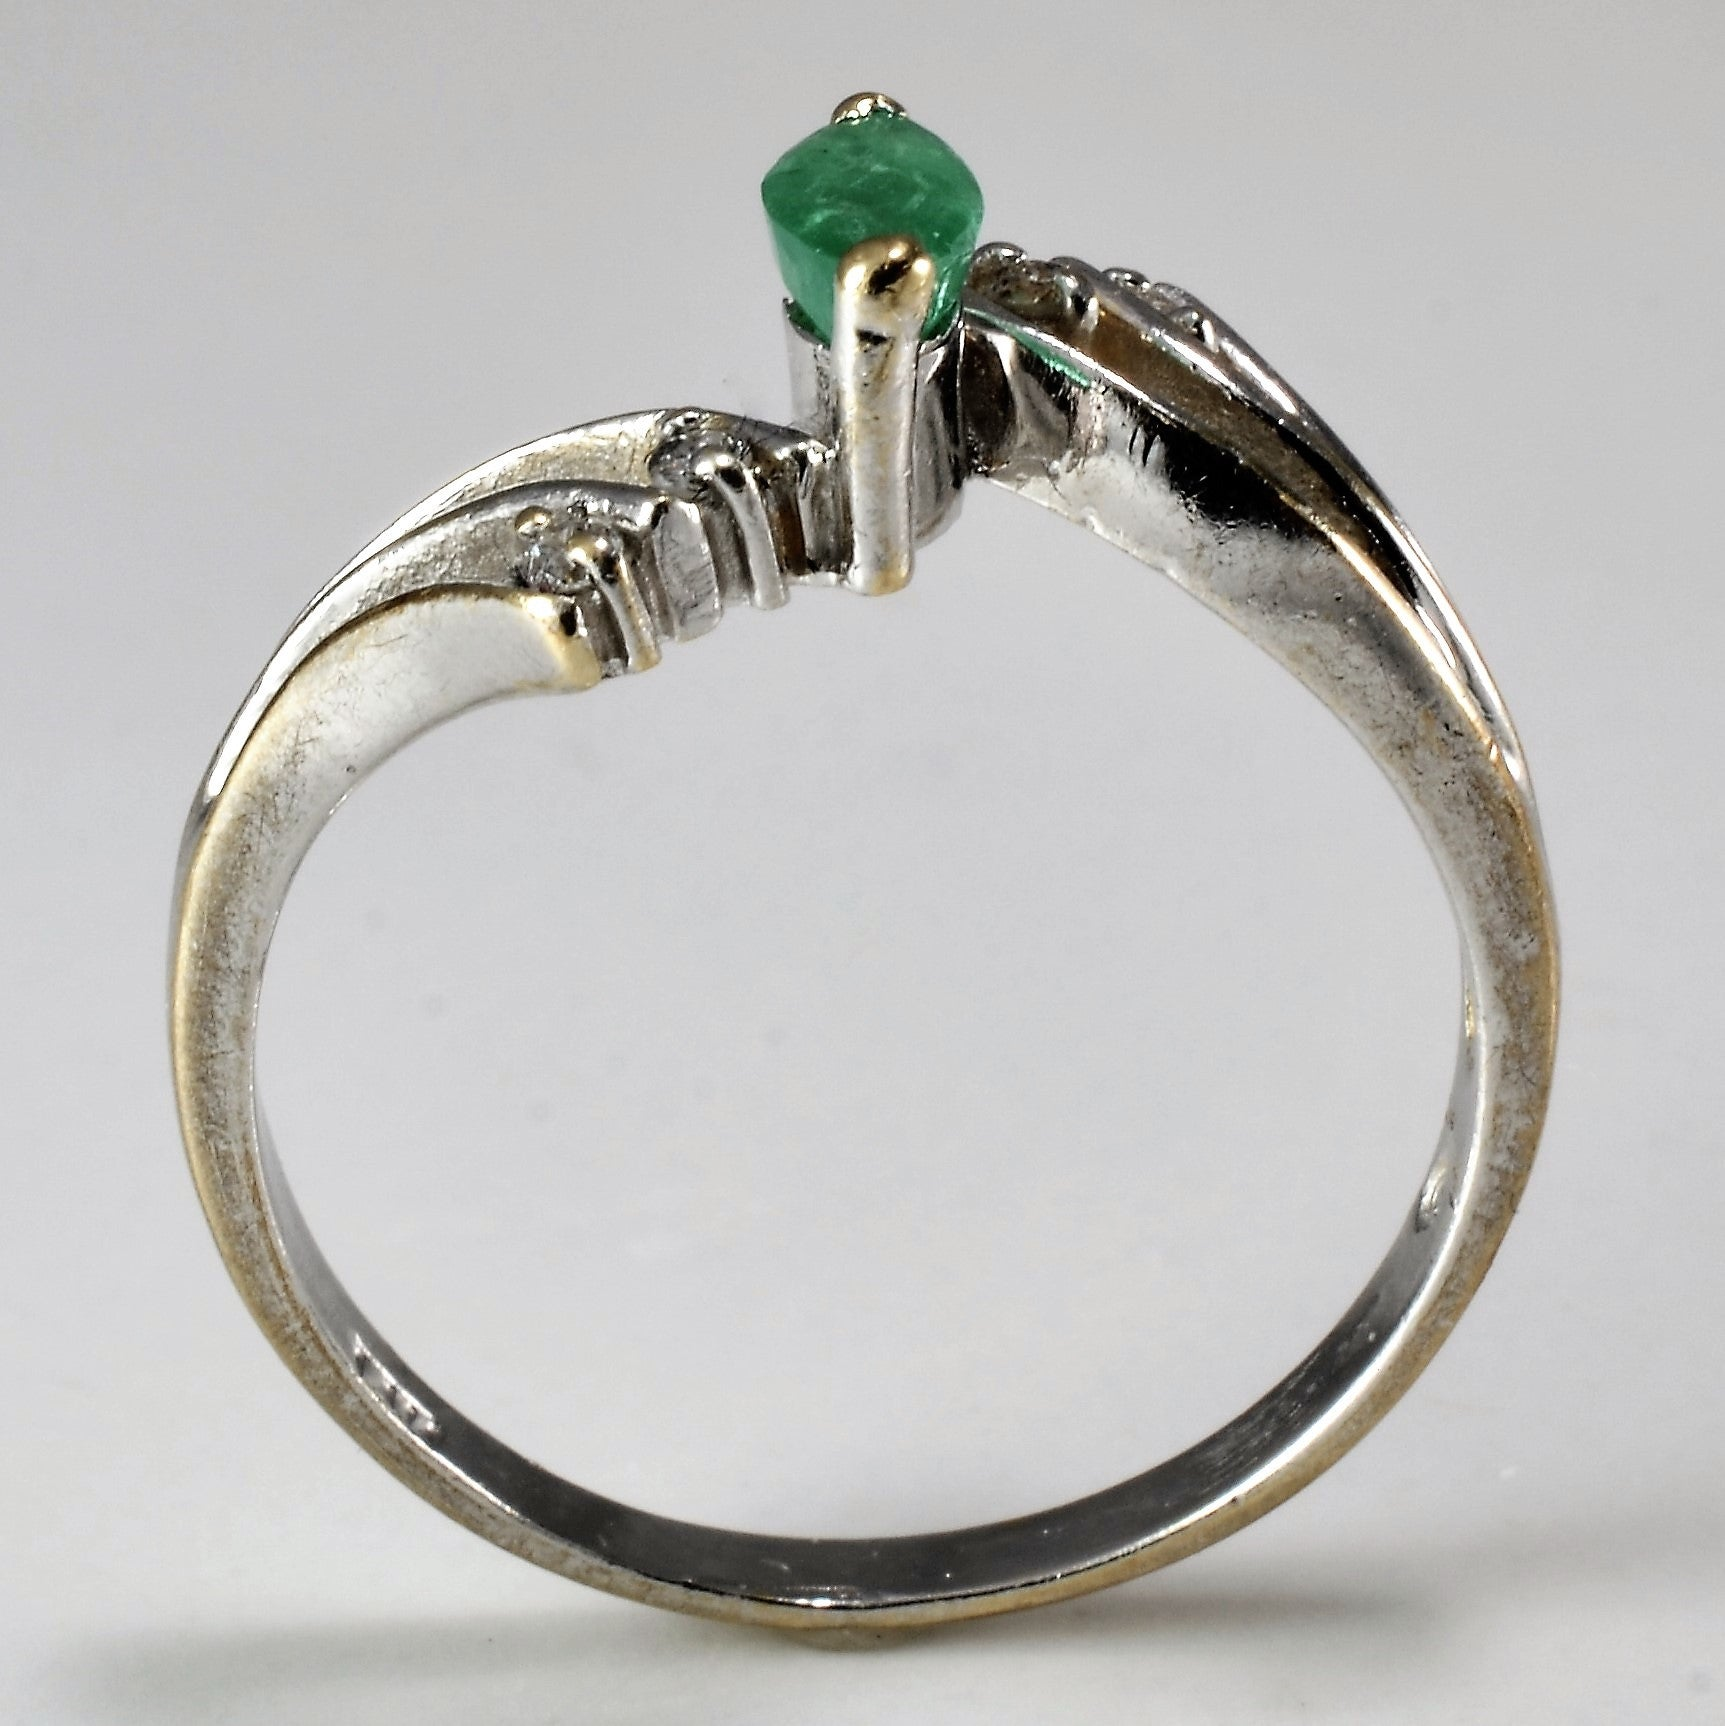 Beautiful Bypass Emerald & Diamond Ring | 0.04 ctw, SZ 6.75 |